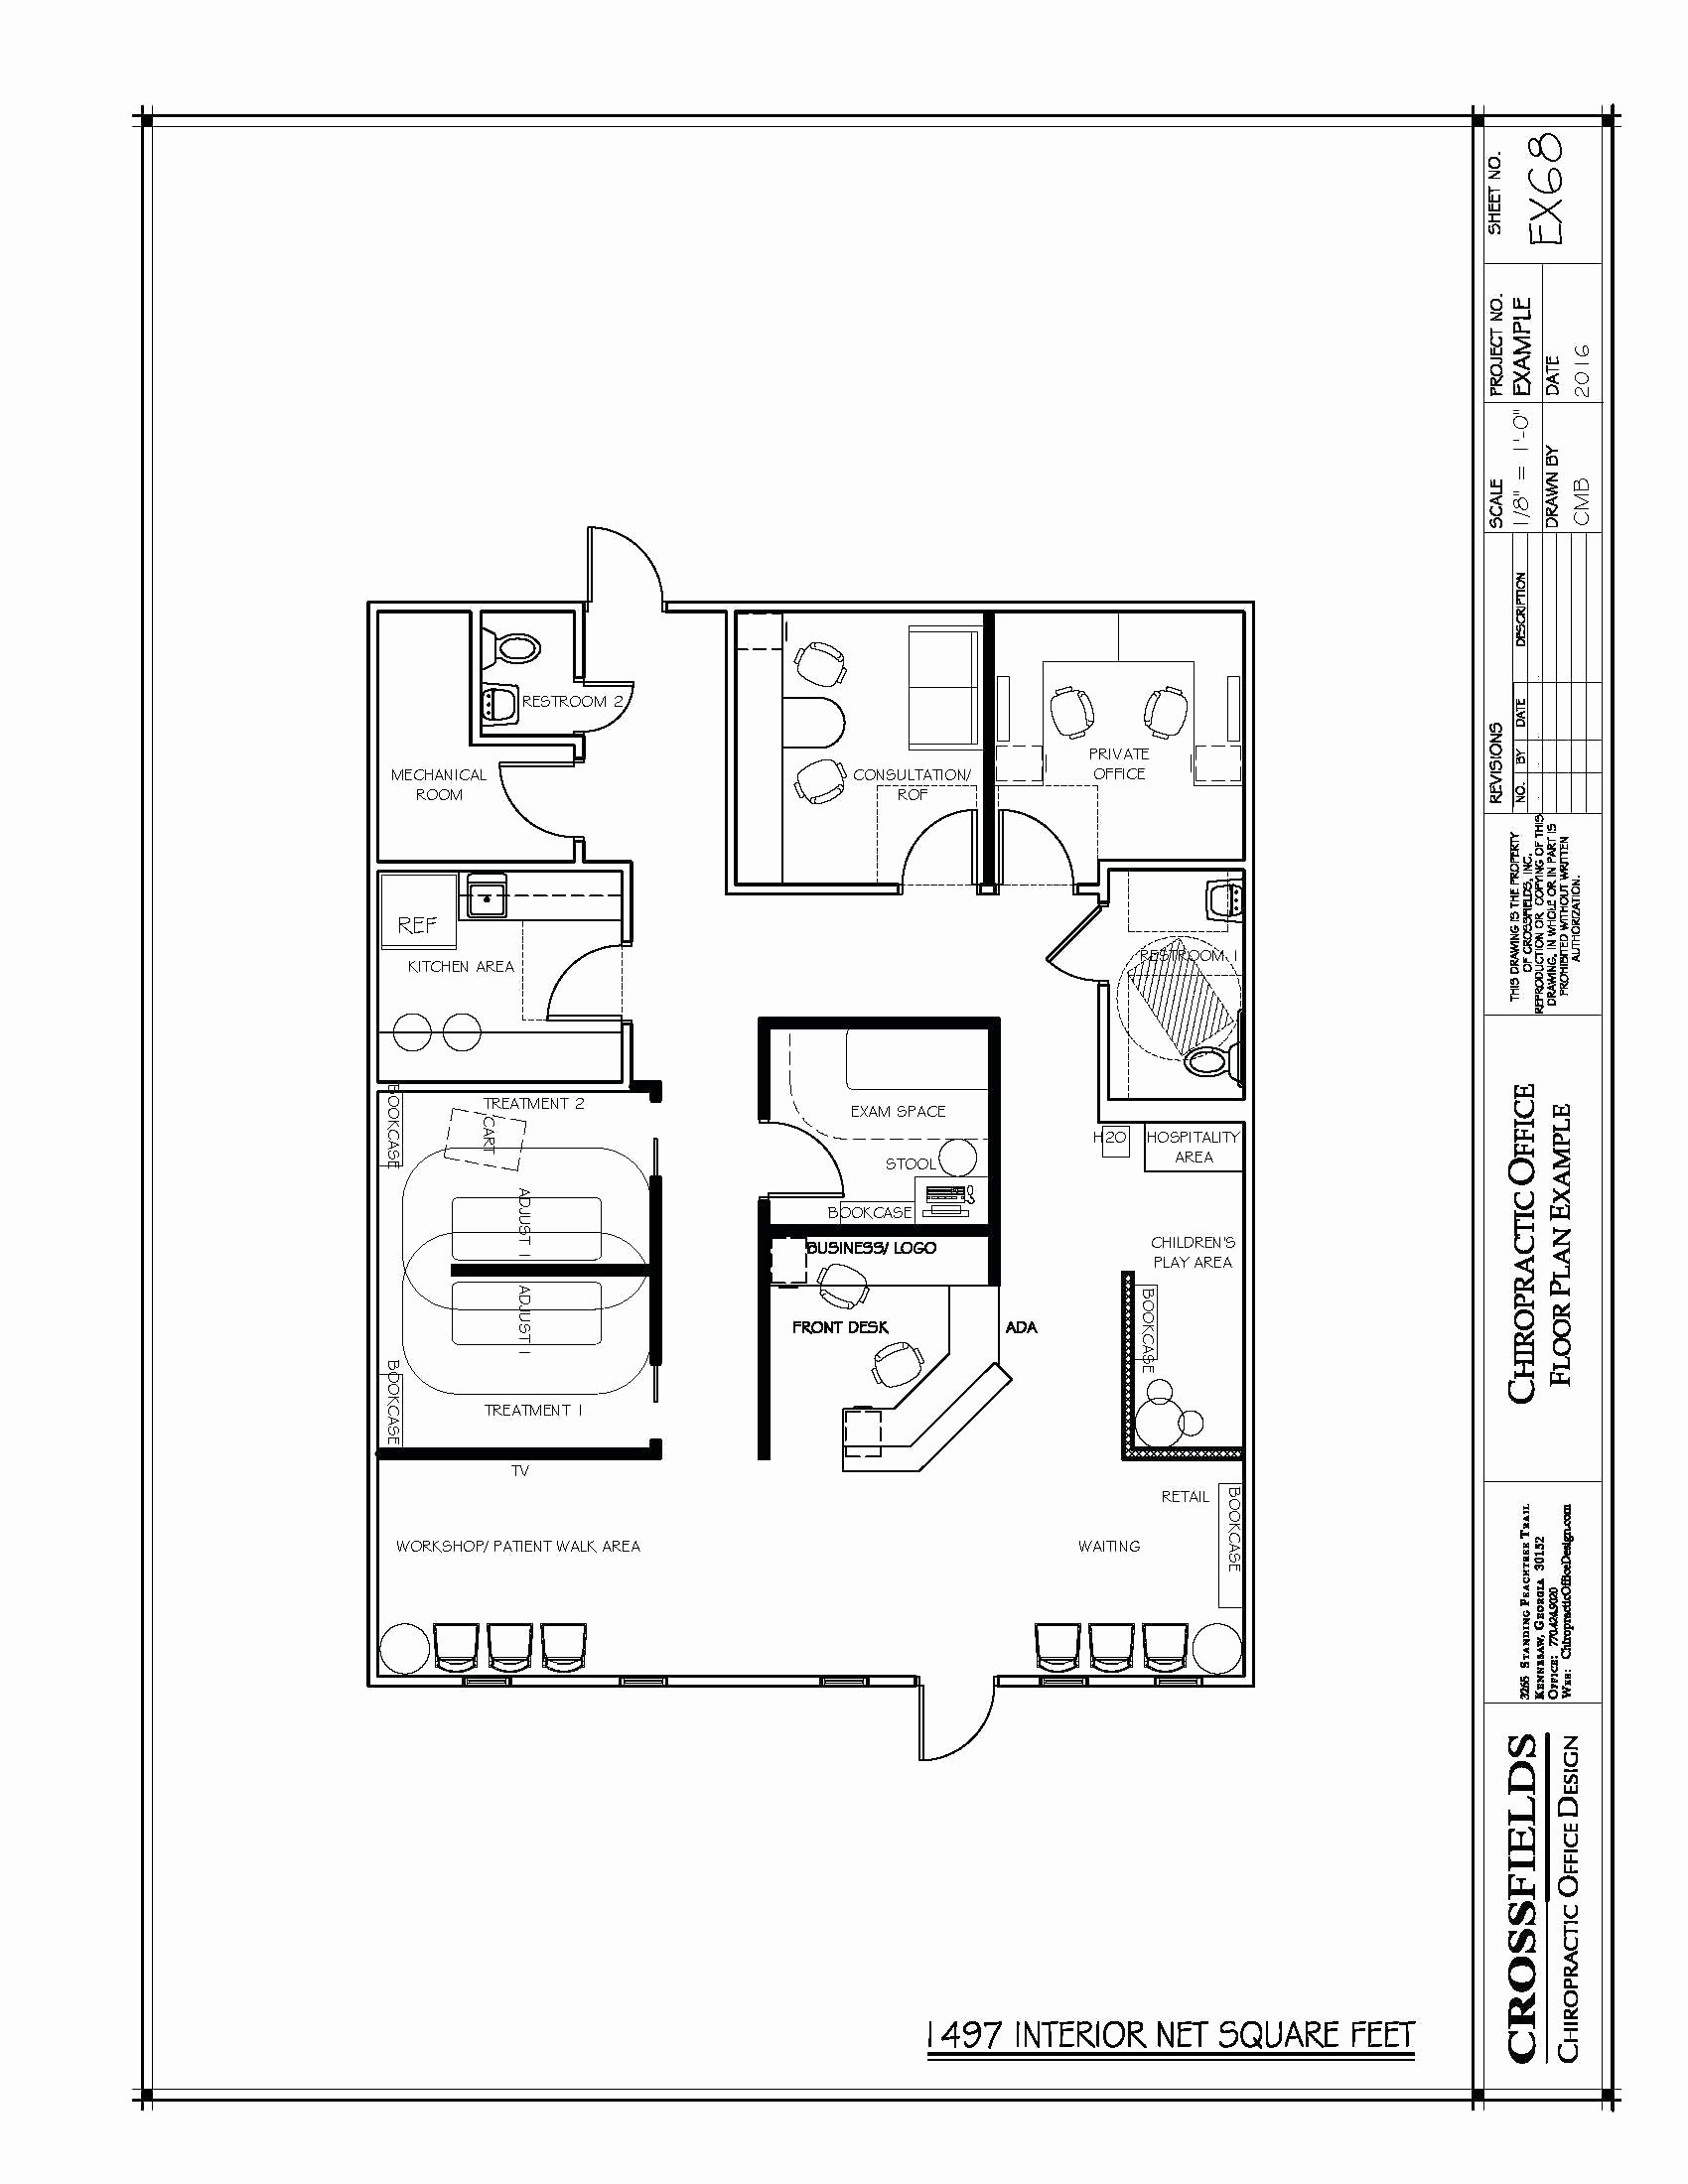 Floor Plan Templates Free Luxury Fice Layout software Free Templates to Make Fice Plans